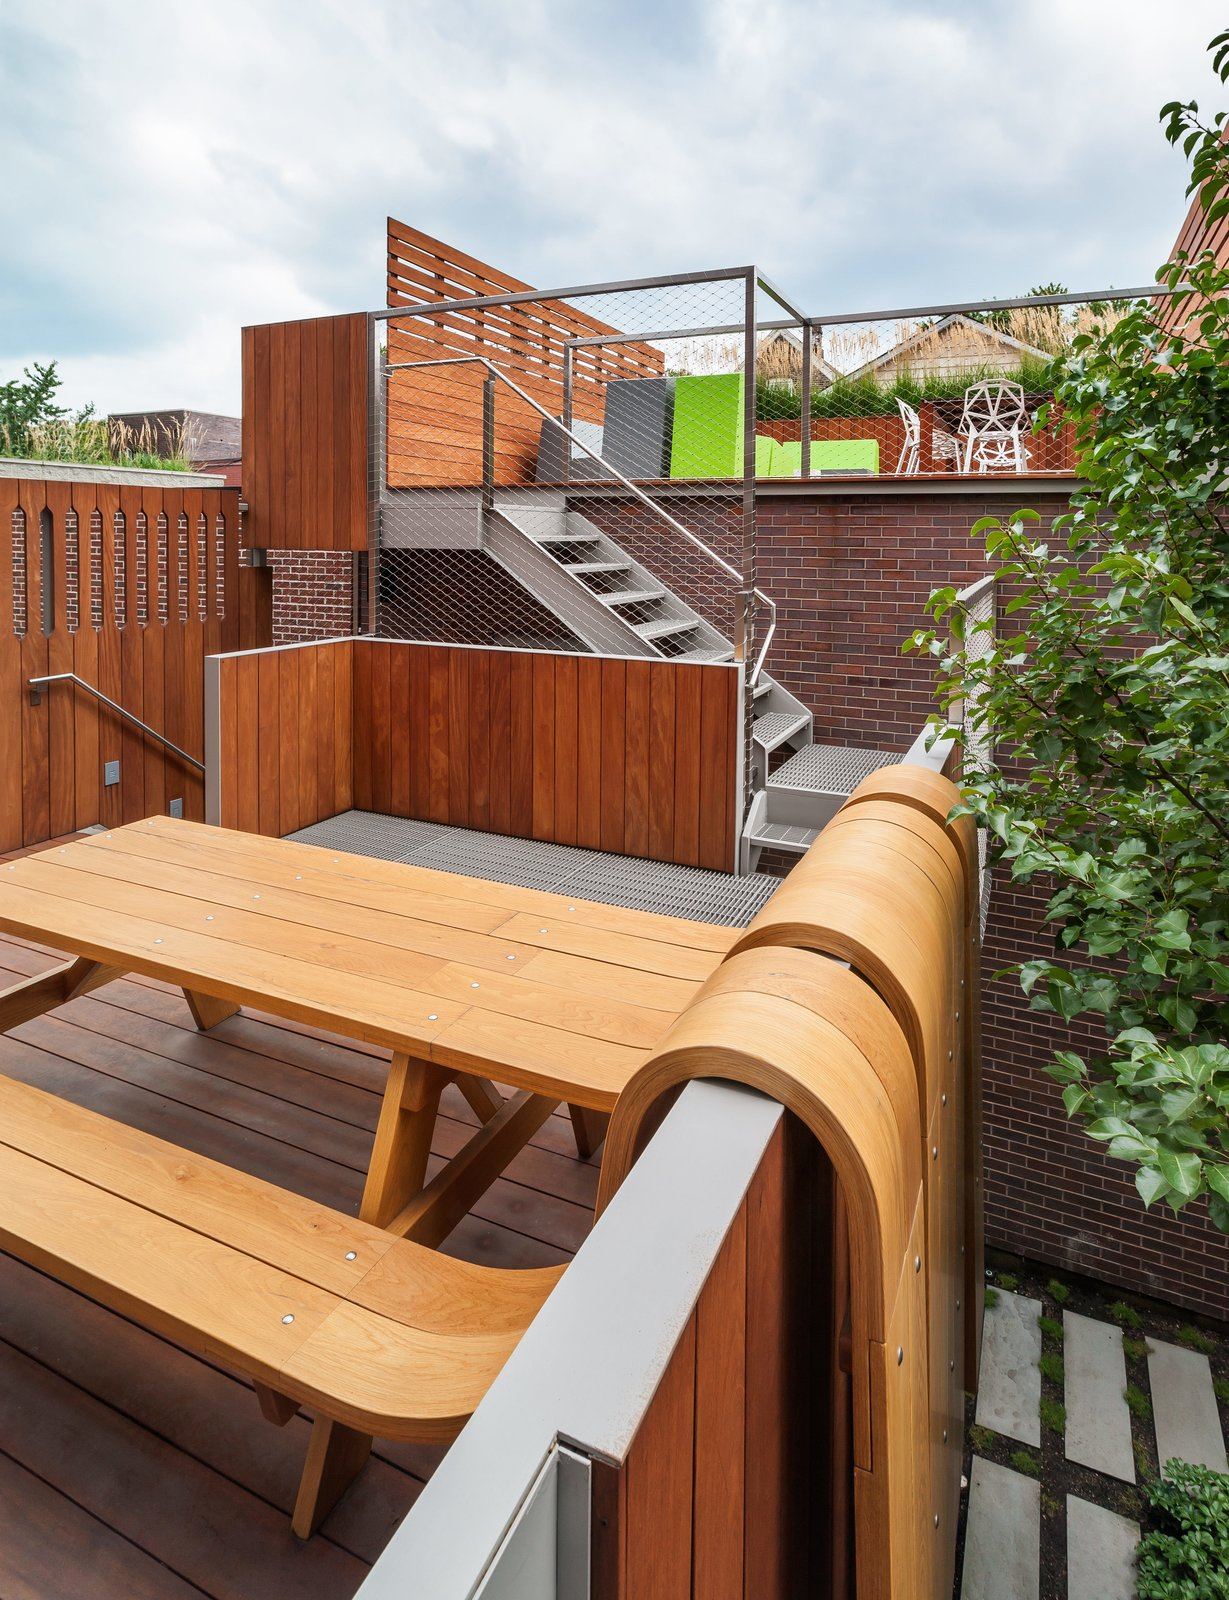 Outdoor, Rooftop, Vertical Fences, Wall, Wood Fences, Wall, Wood Patio, Porch, Deck, and Horizontal Fences, Wall A sculptural picnic table by artist Michael Beitz flows over the fence like a waterfall.  Photo 7 of 17 in Four Floors of Gadgets and Gardens in Chicago